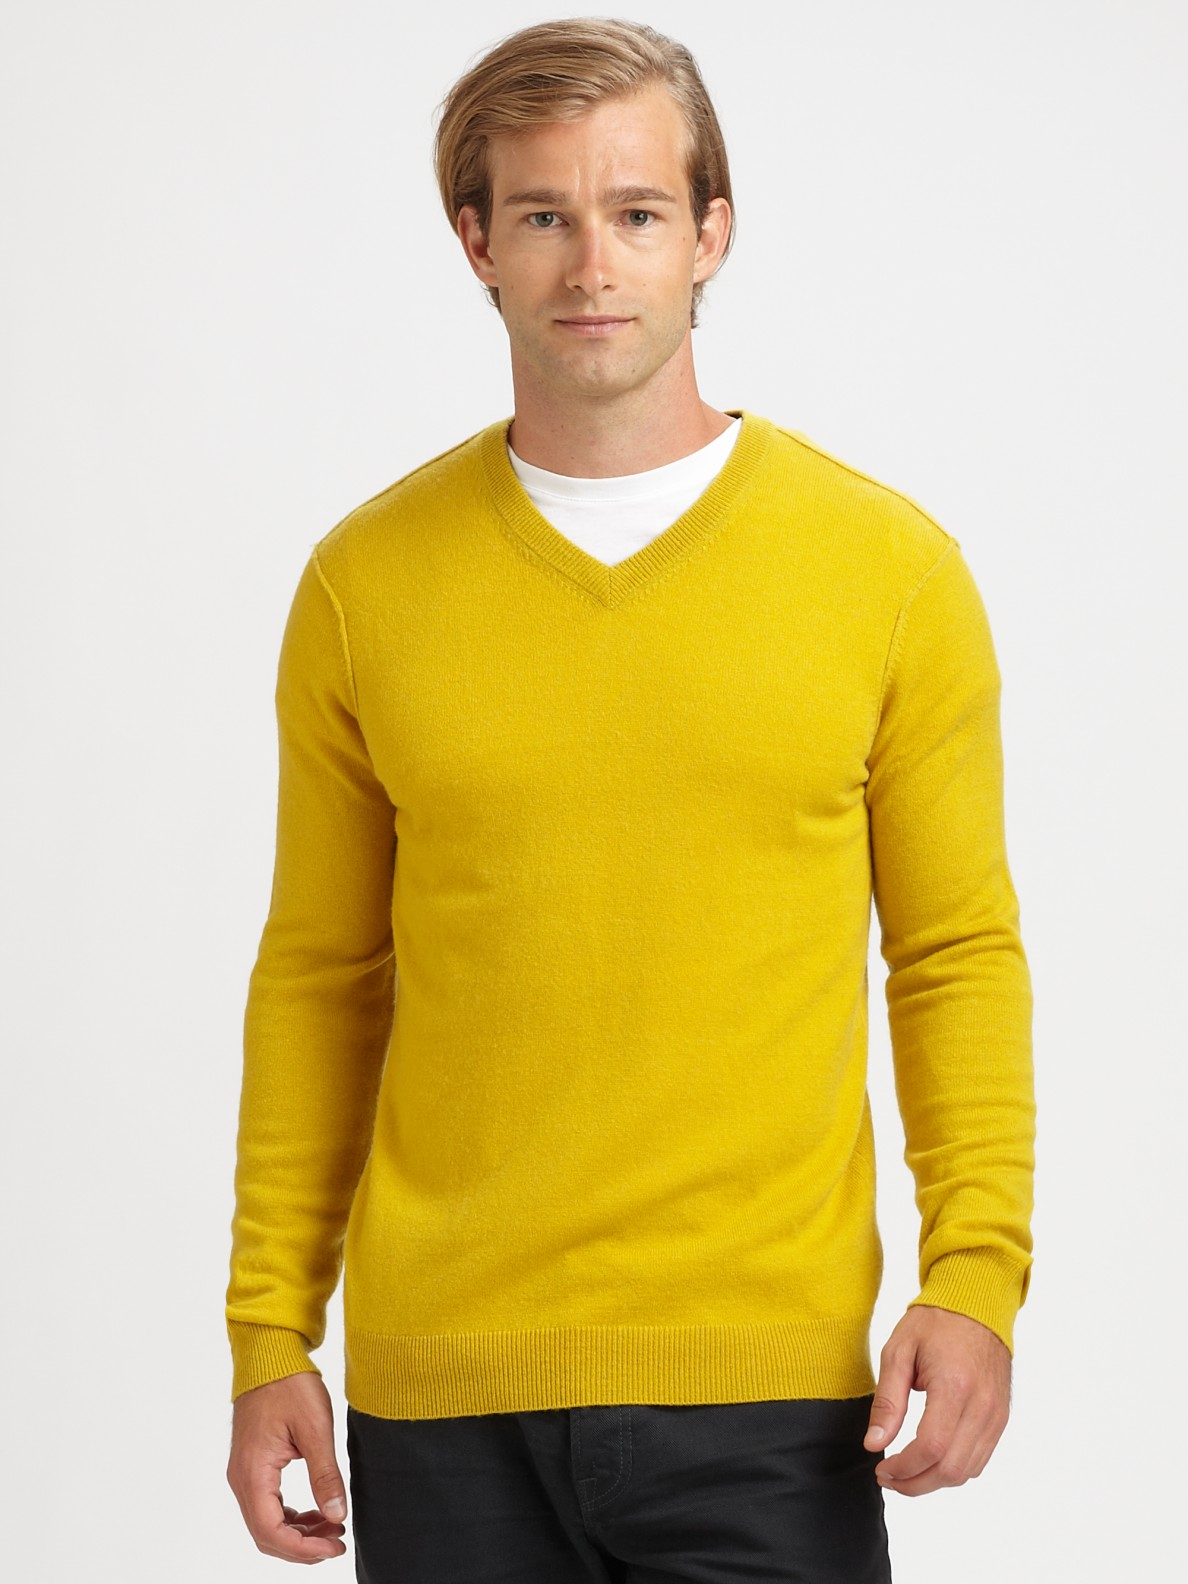 Yellow V Neck Sweater 73